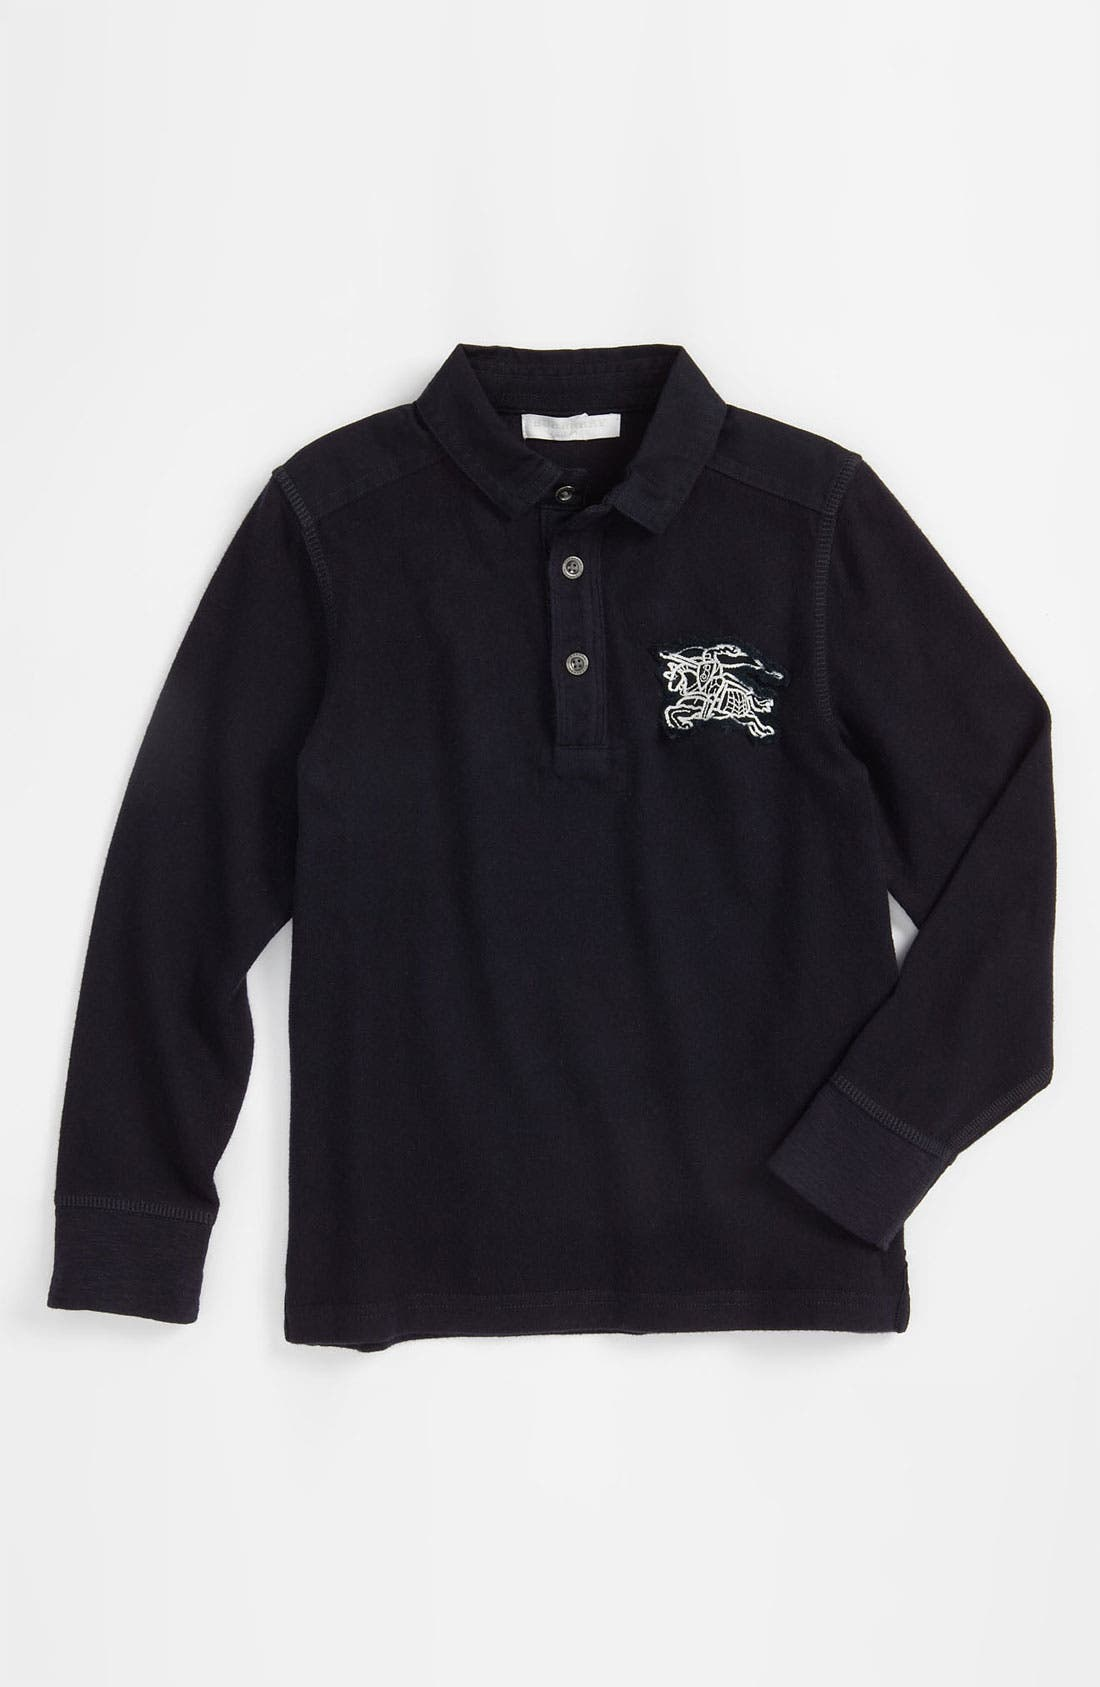 Alternate Image 1 Selected - Burberry Rugby Shirt (Big Boys)